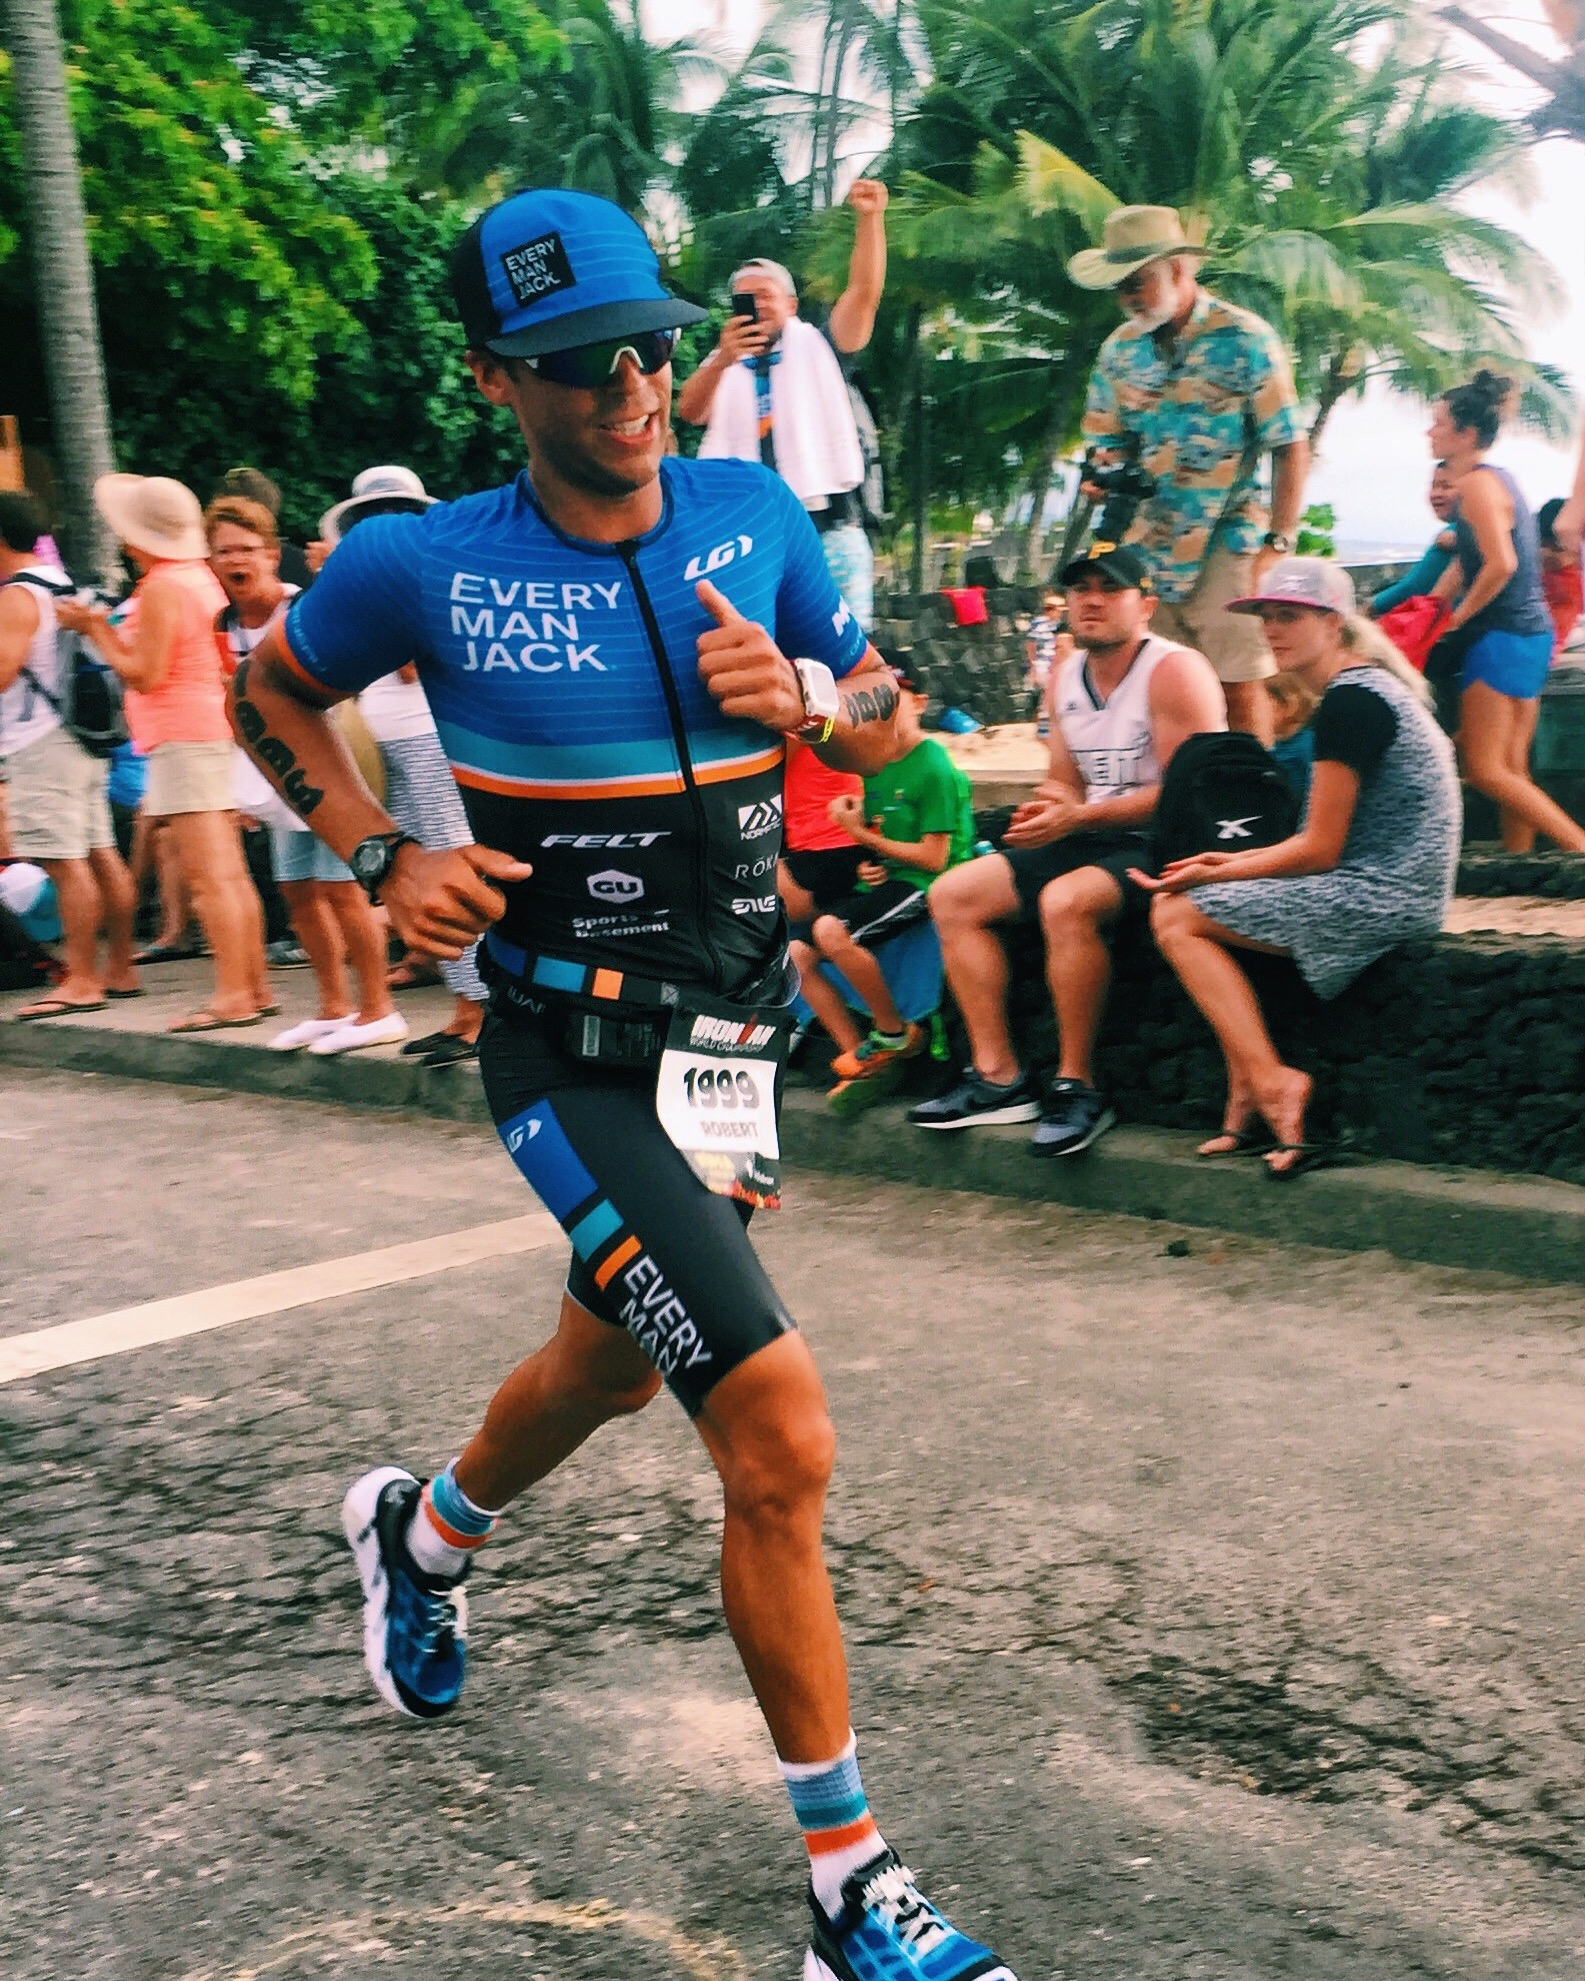 Ironman Kona World Champs